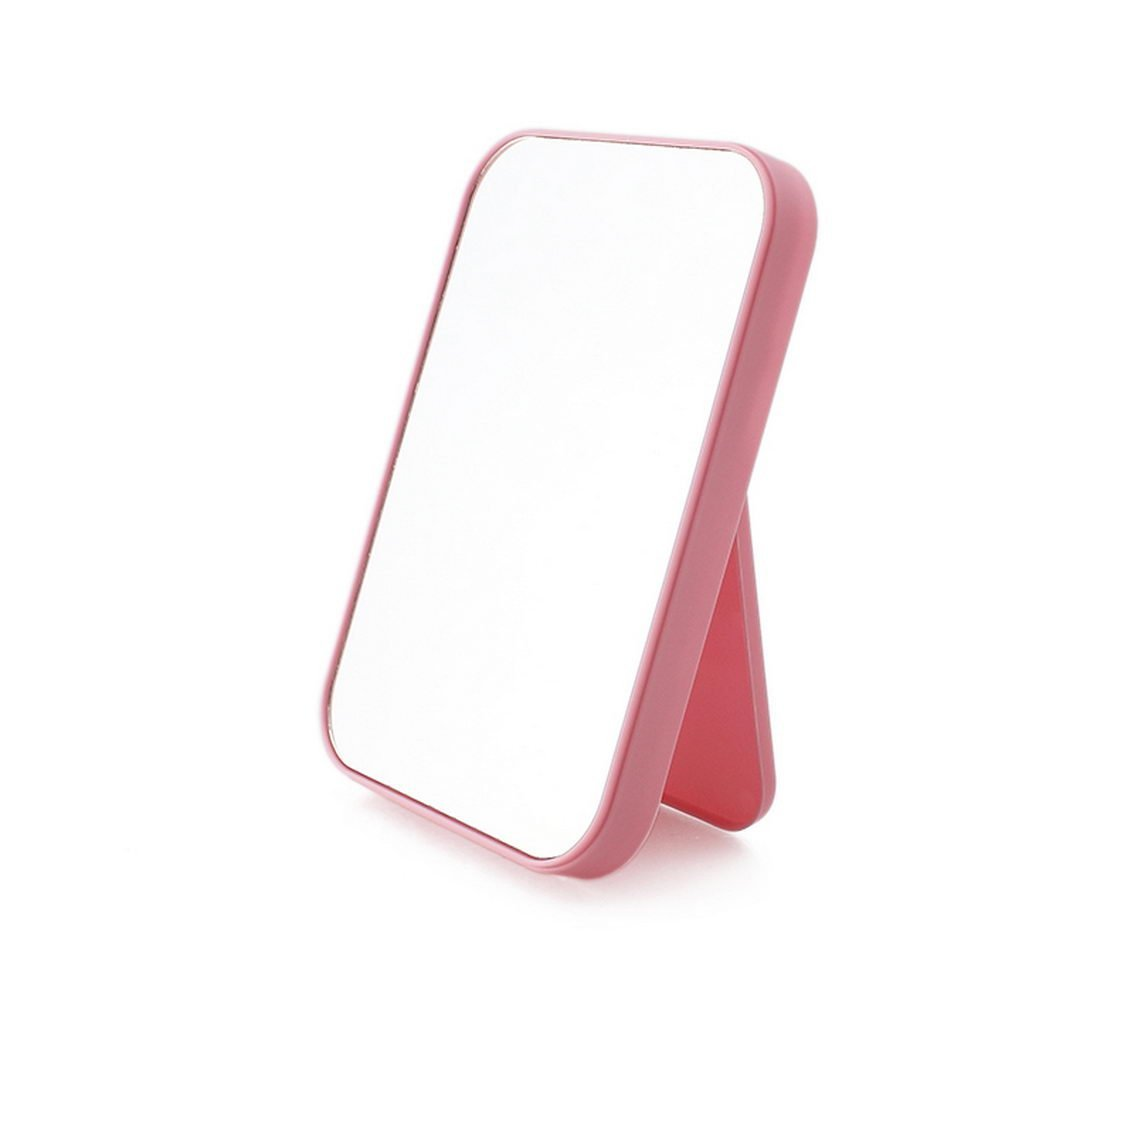 luo-7-pan mirror desktop stack 63958. Princess princess mirror portable mirror princess mirror vanity mirror Vanit